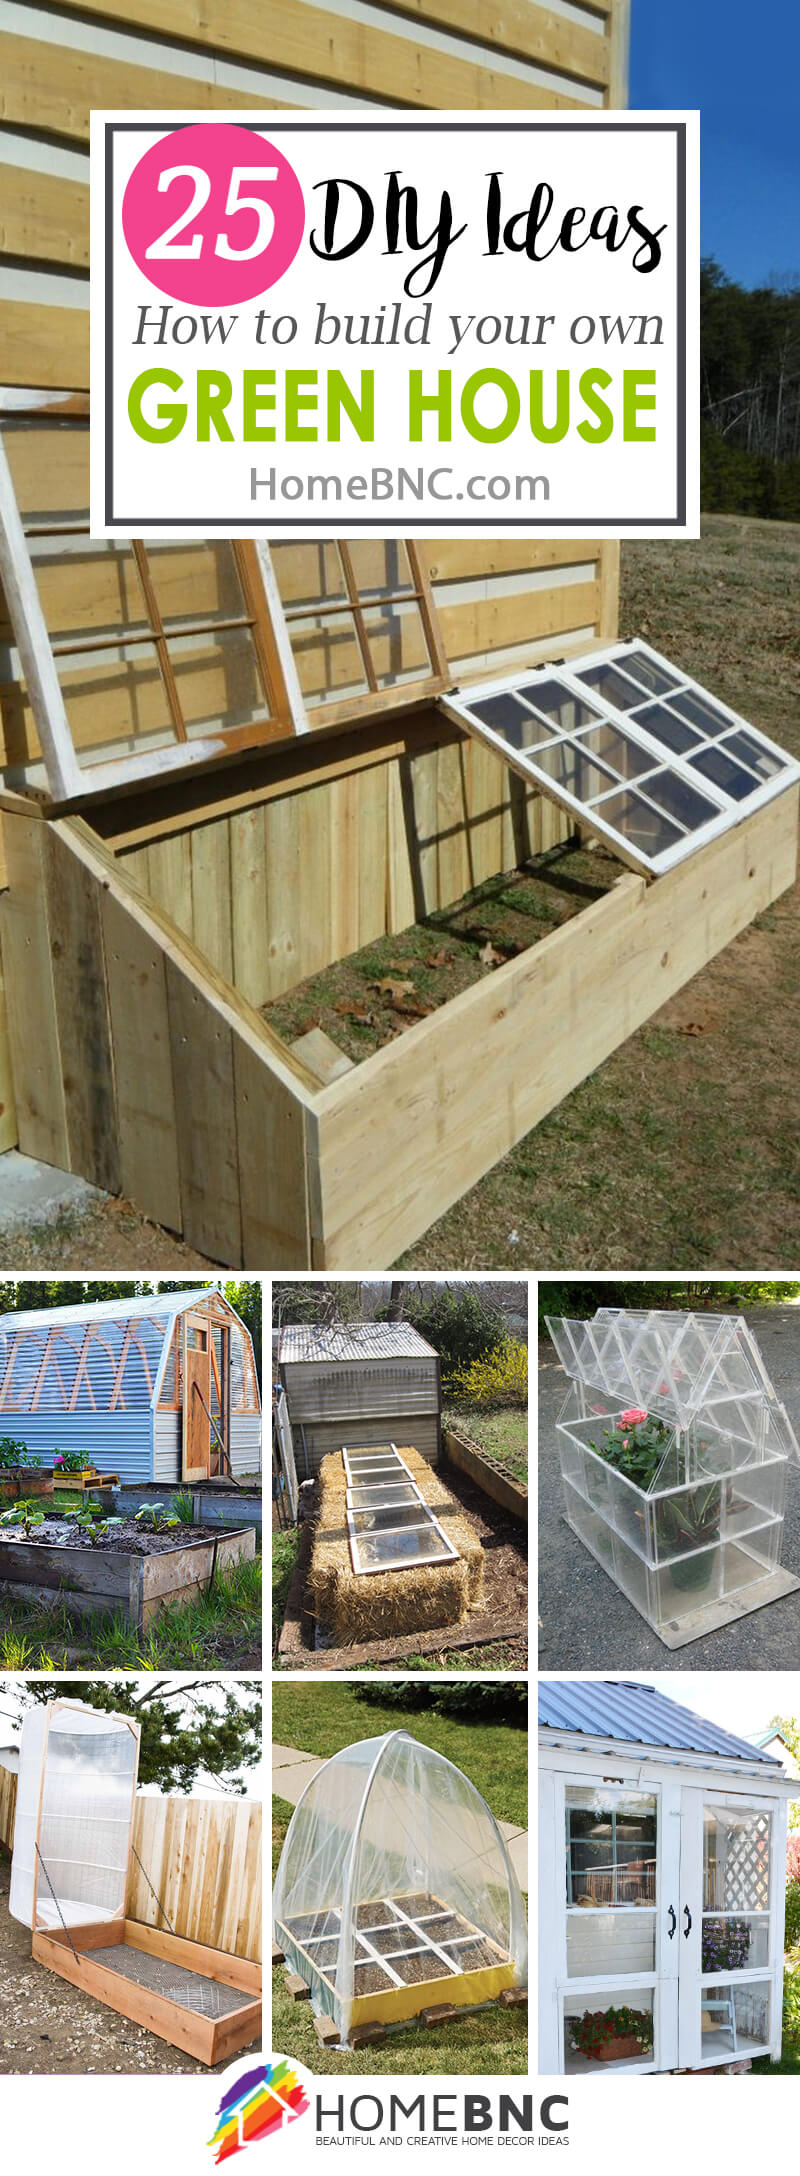 DIY Green House Projects